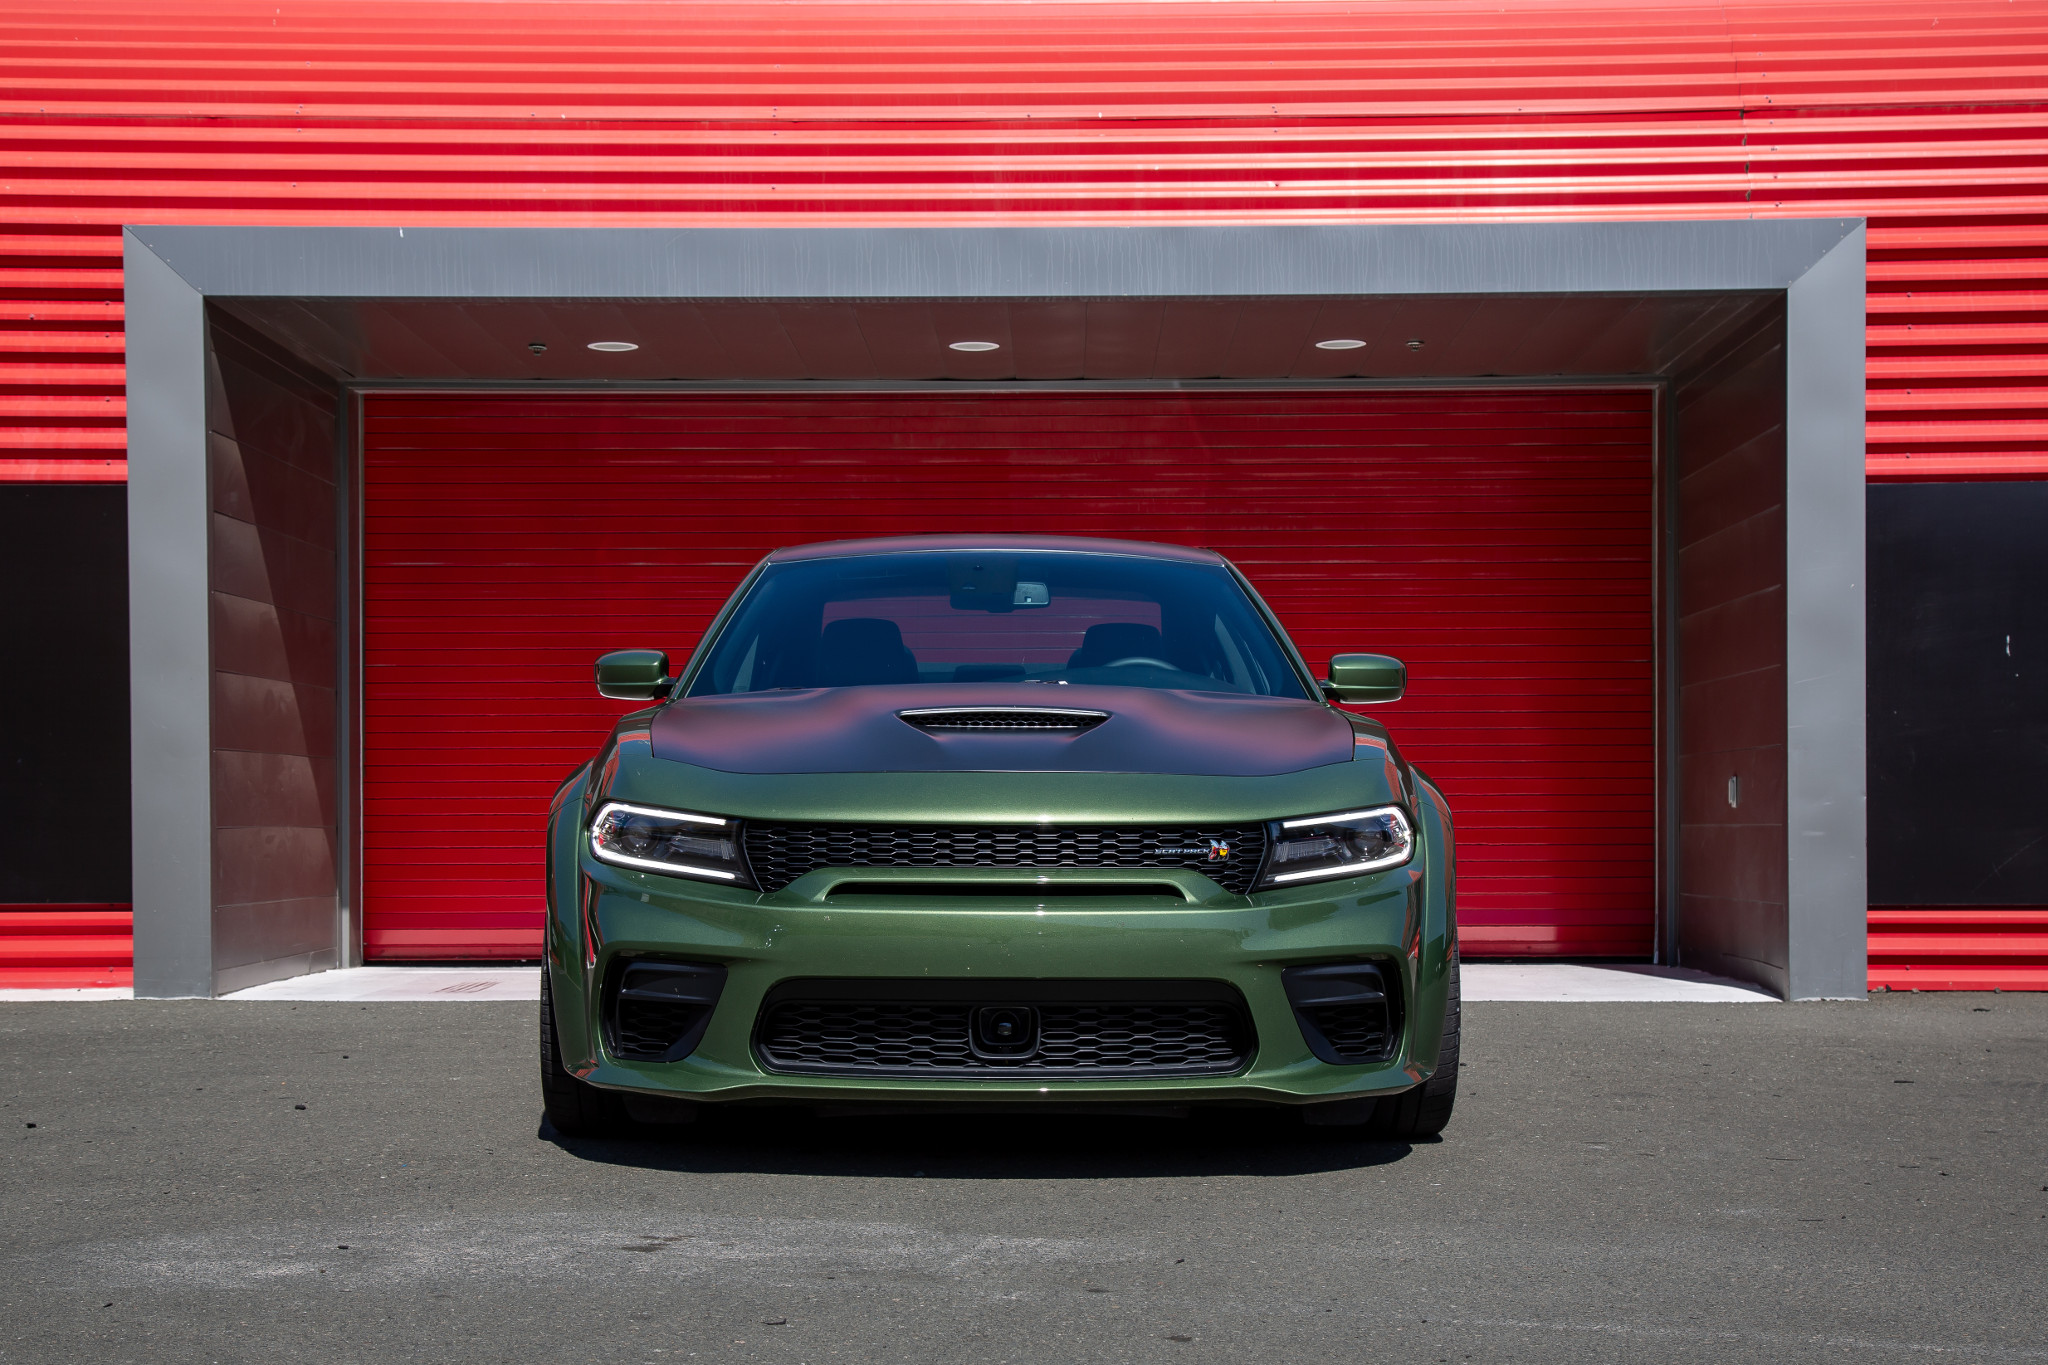 Top 5 Reviews and Videos of the Week: 2020 Dodge Charger Widebodies Roar into the Fray